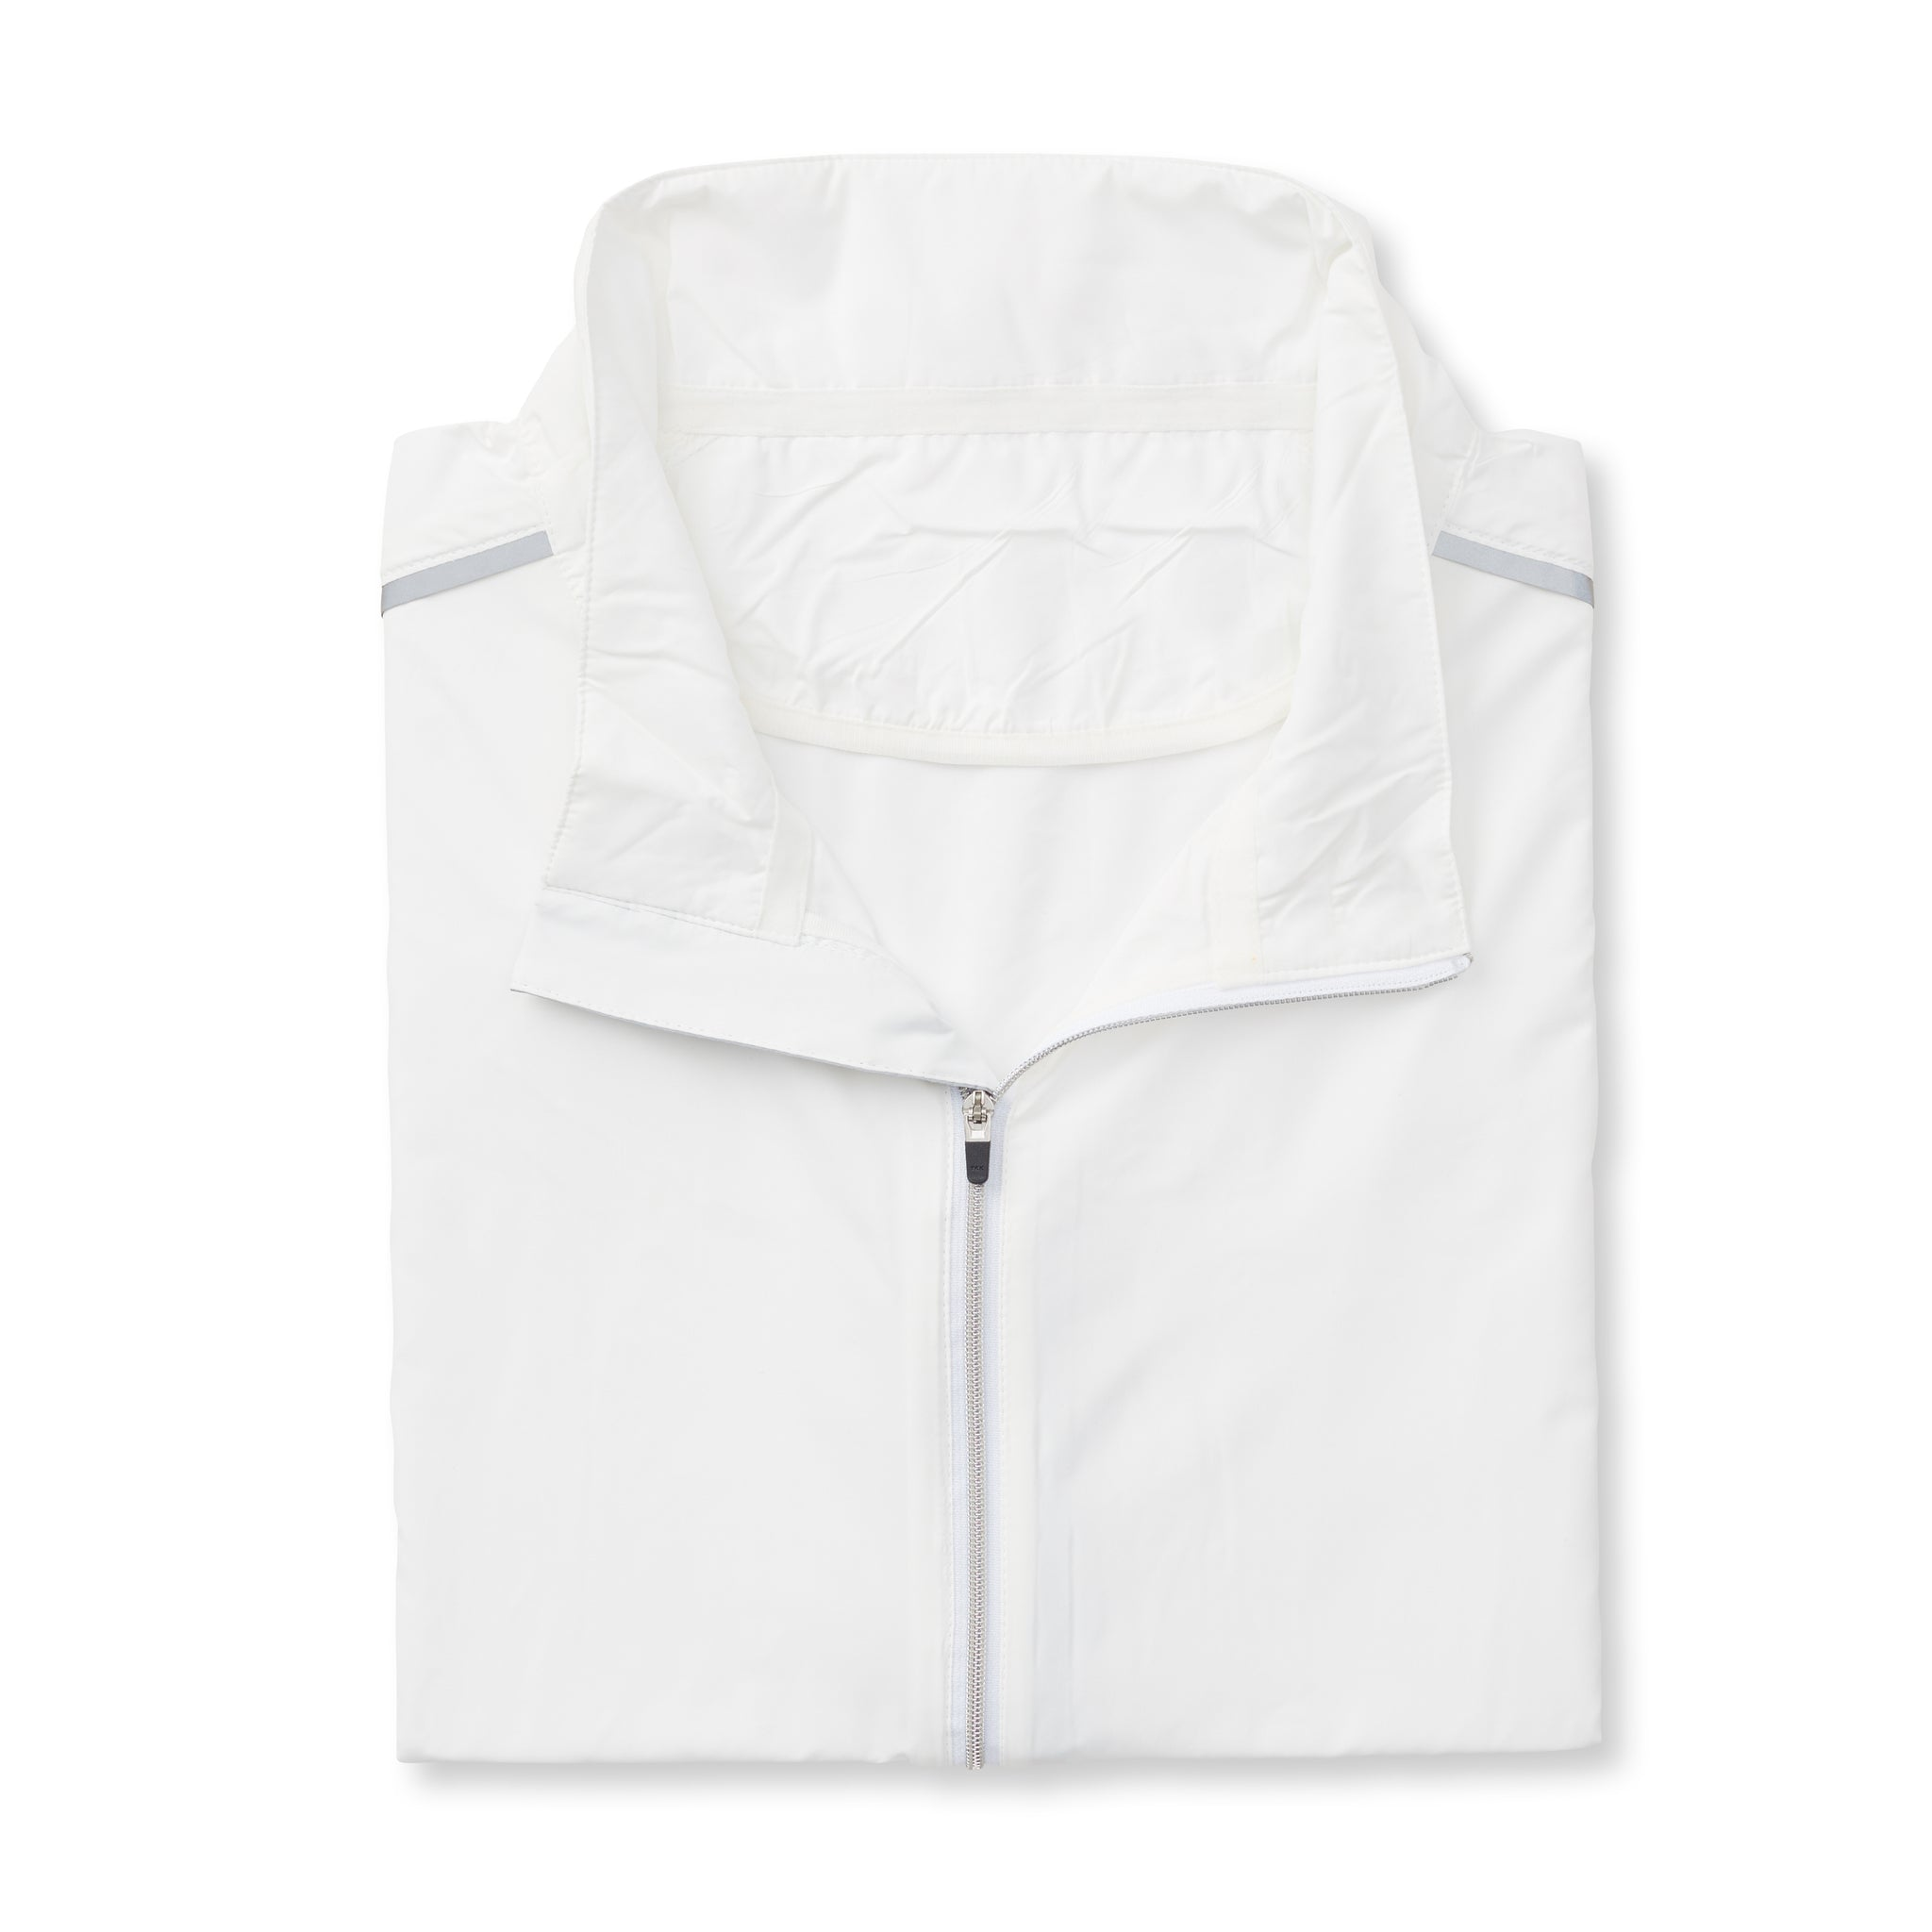 TEC WINDWEAR Full Zip Jacket - White IS64905FZ